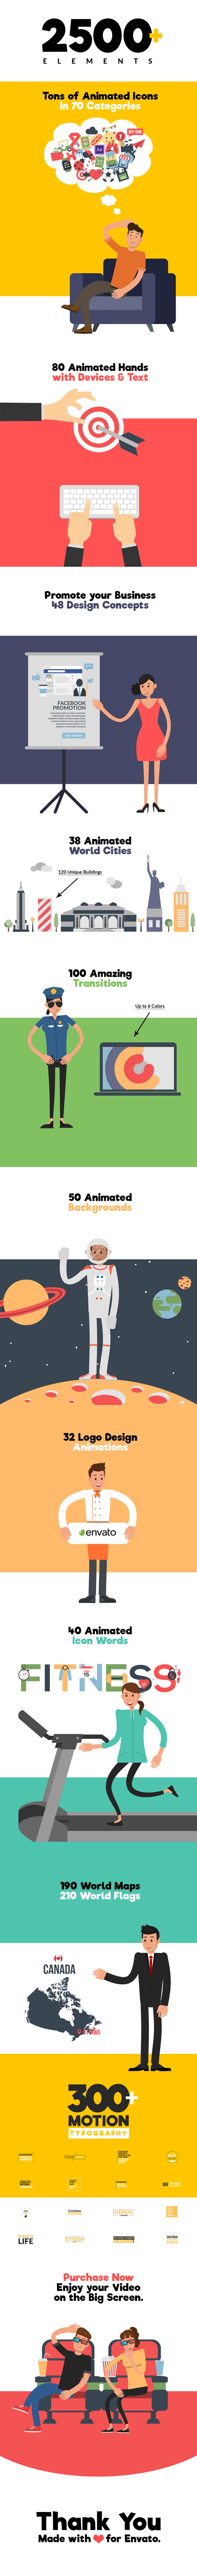 Story Now | Character Animation Explainer Toolkit - 8